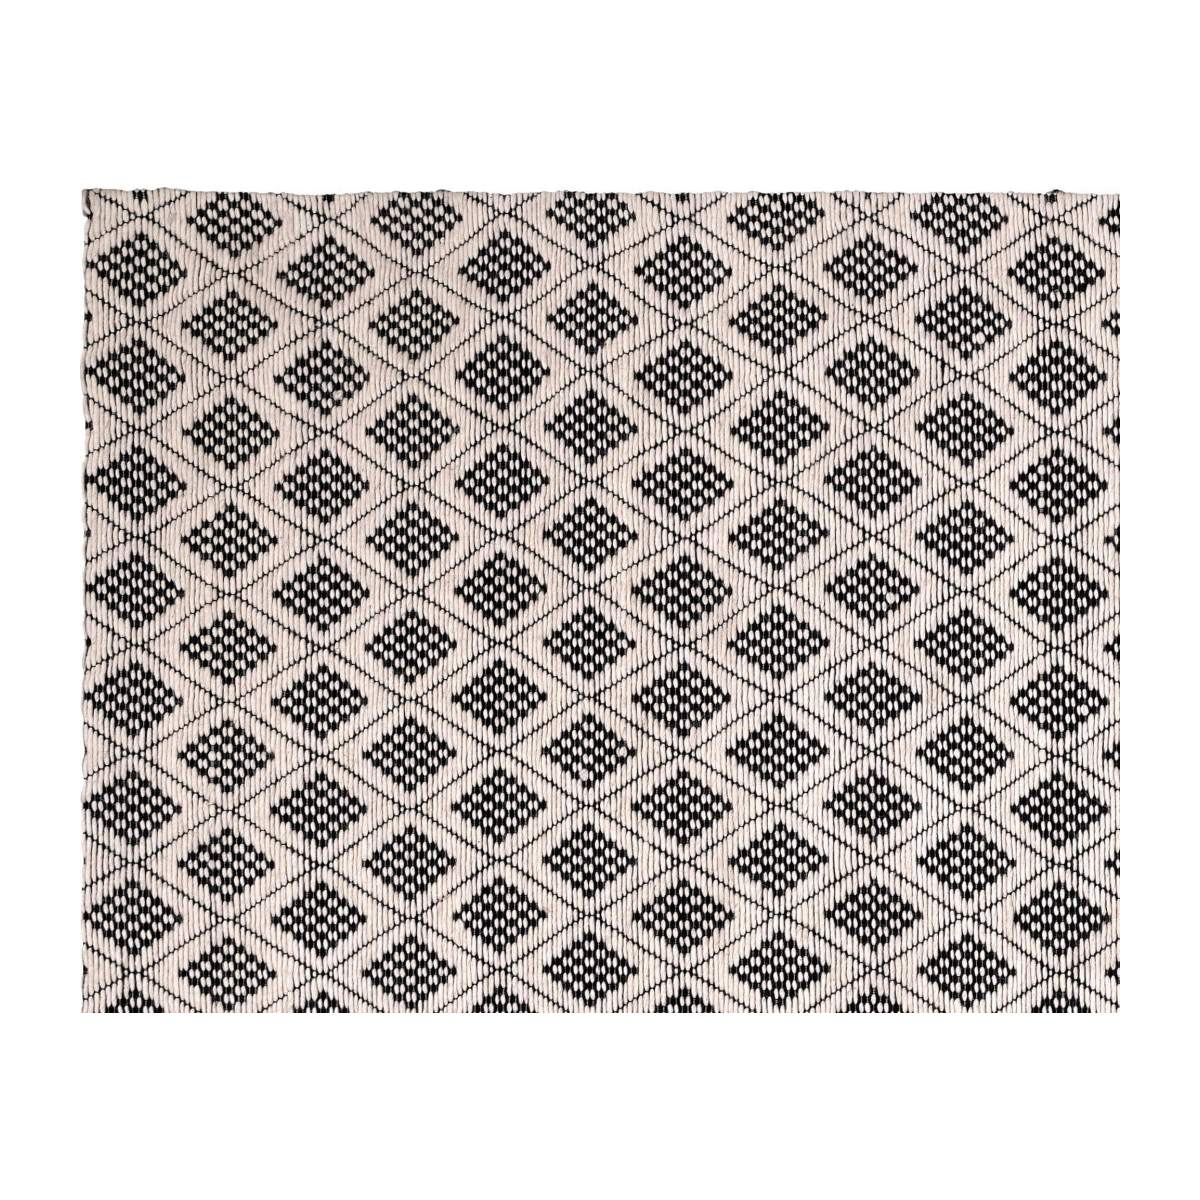 Picture of: Lana Woven Wool Rug Black And White 170x240cm Habitat